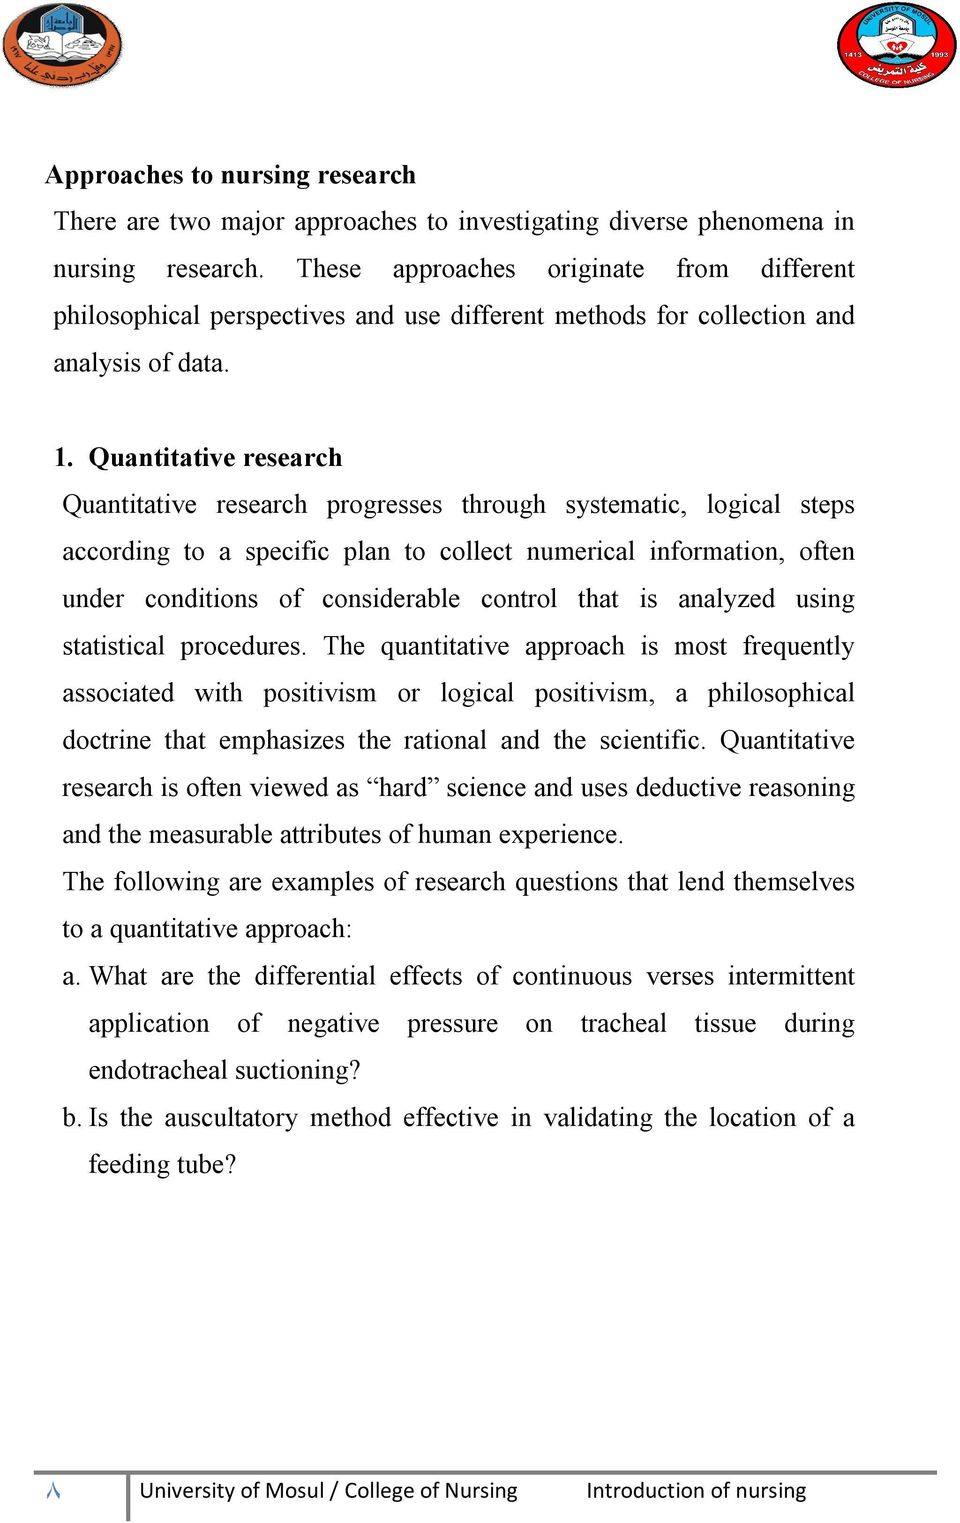 Quantitative research Quantitative research progresses through systematic, logical steps according to a specific plan to collect numerical information, often under conditions of considerable control